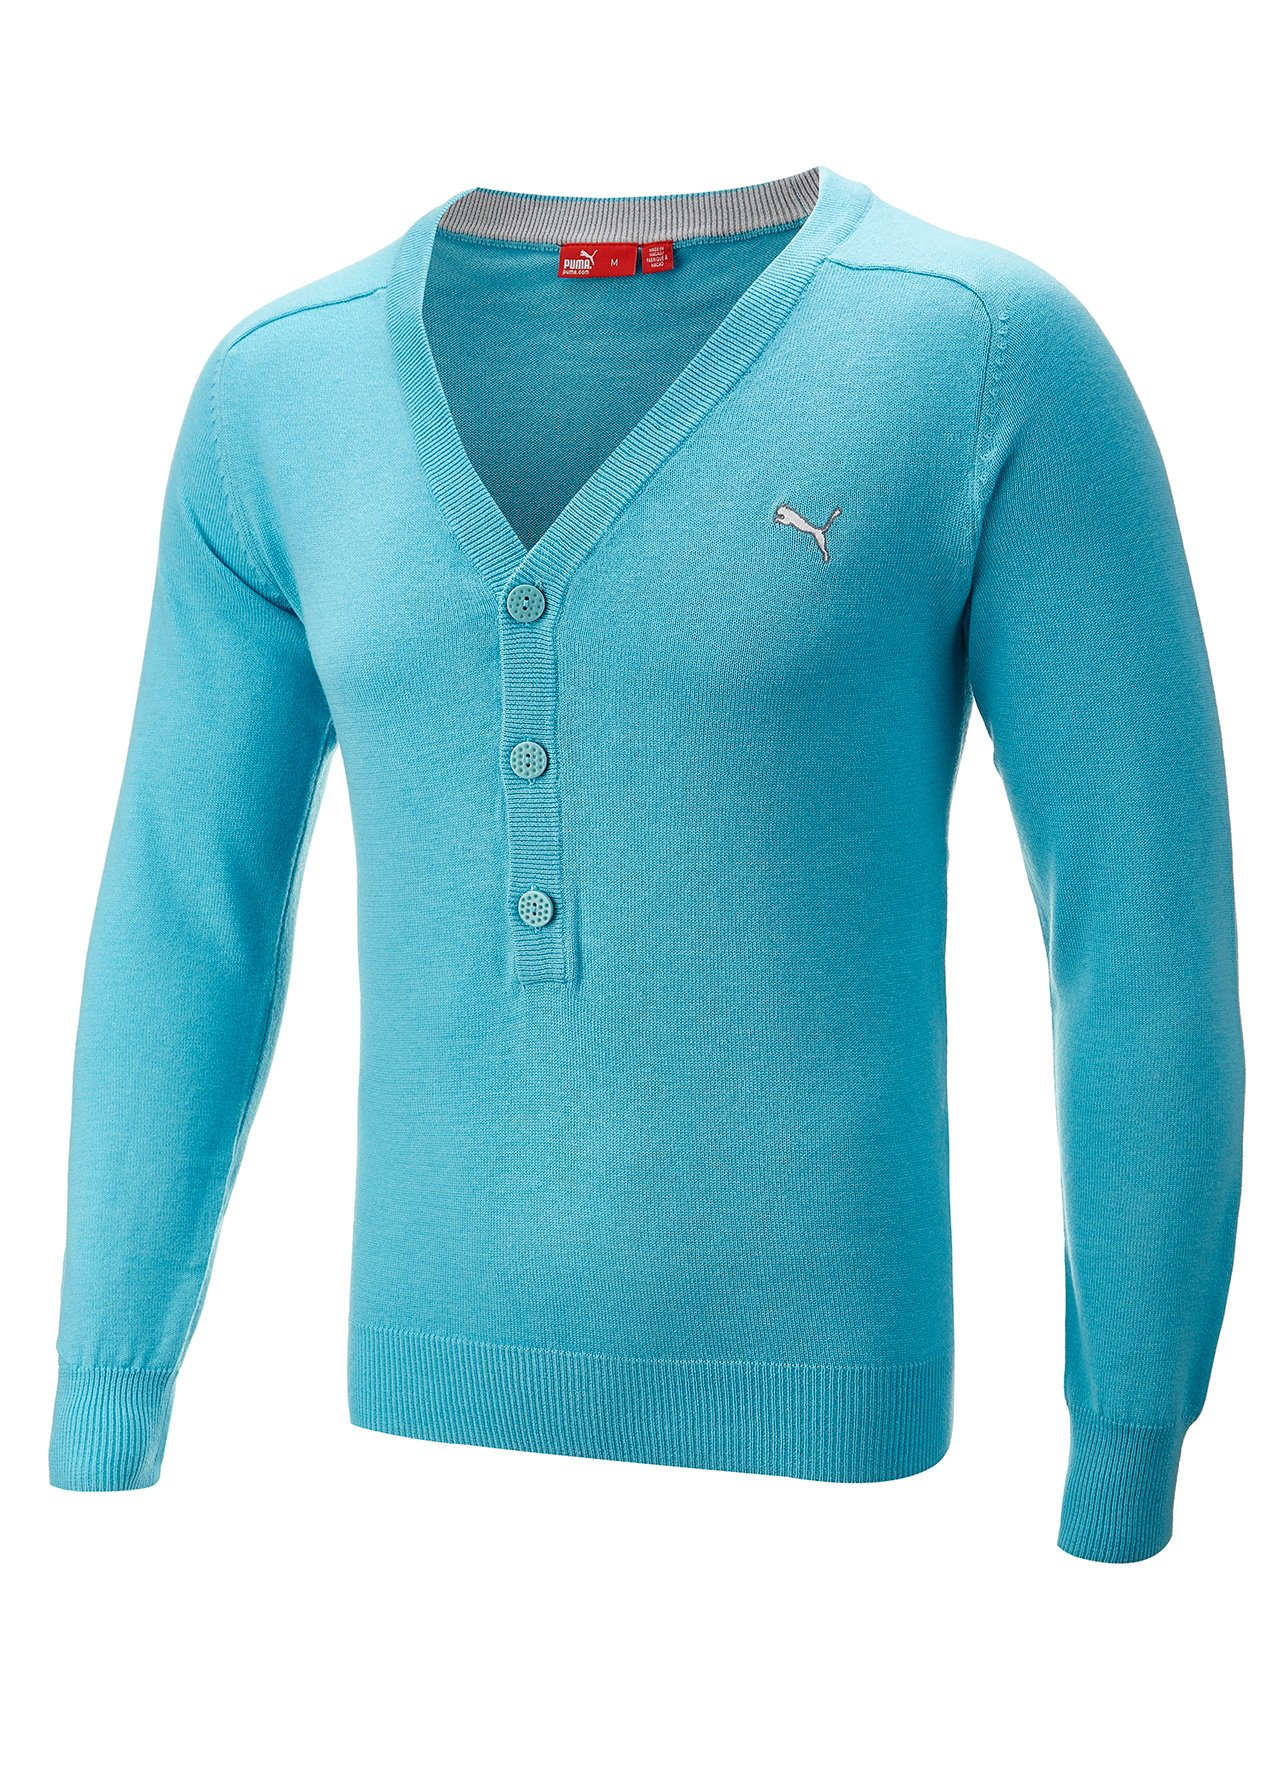 Puma Knitted Button Golf Cardigan Blue Medium Ebay